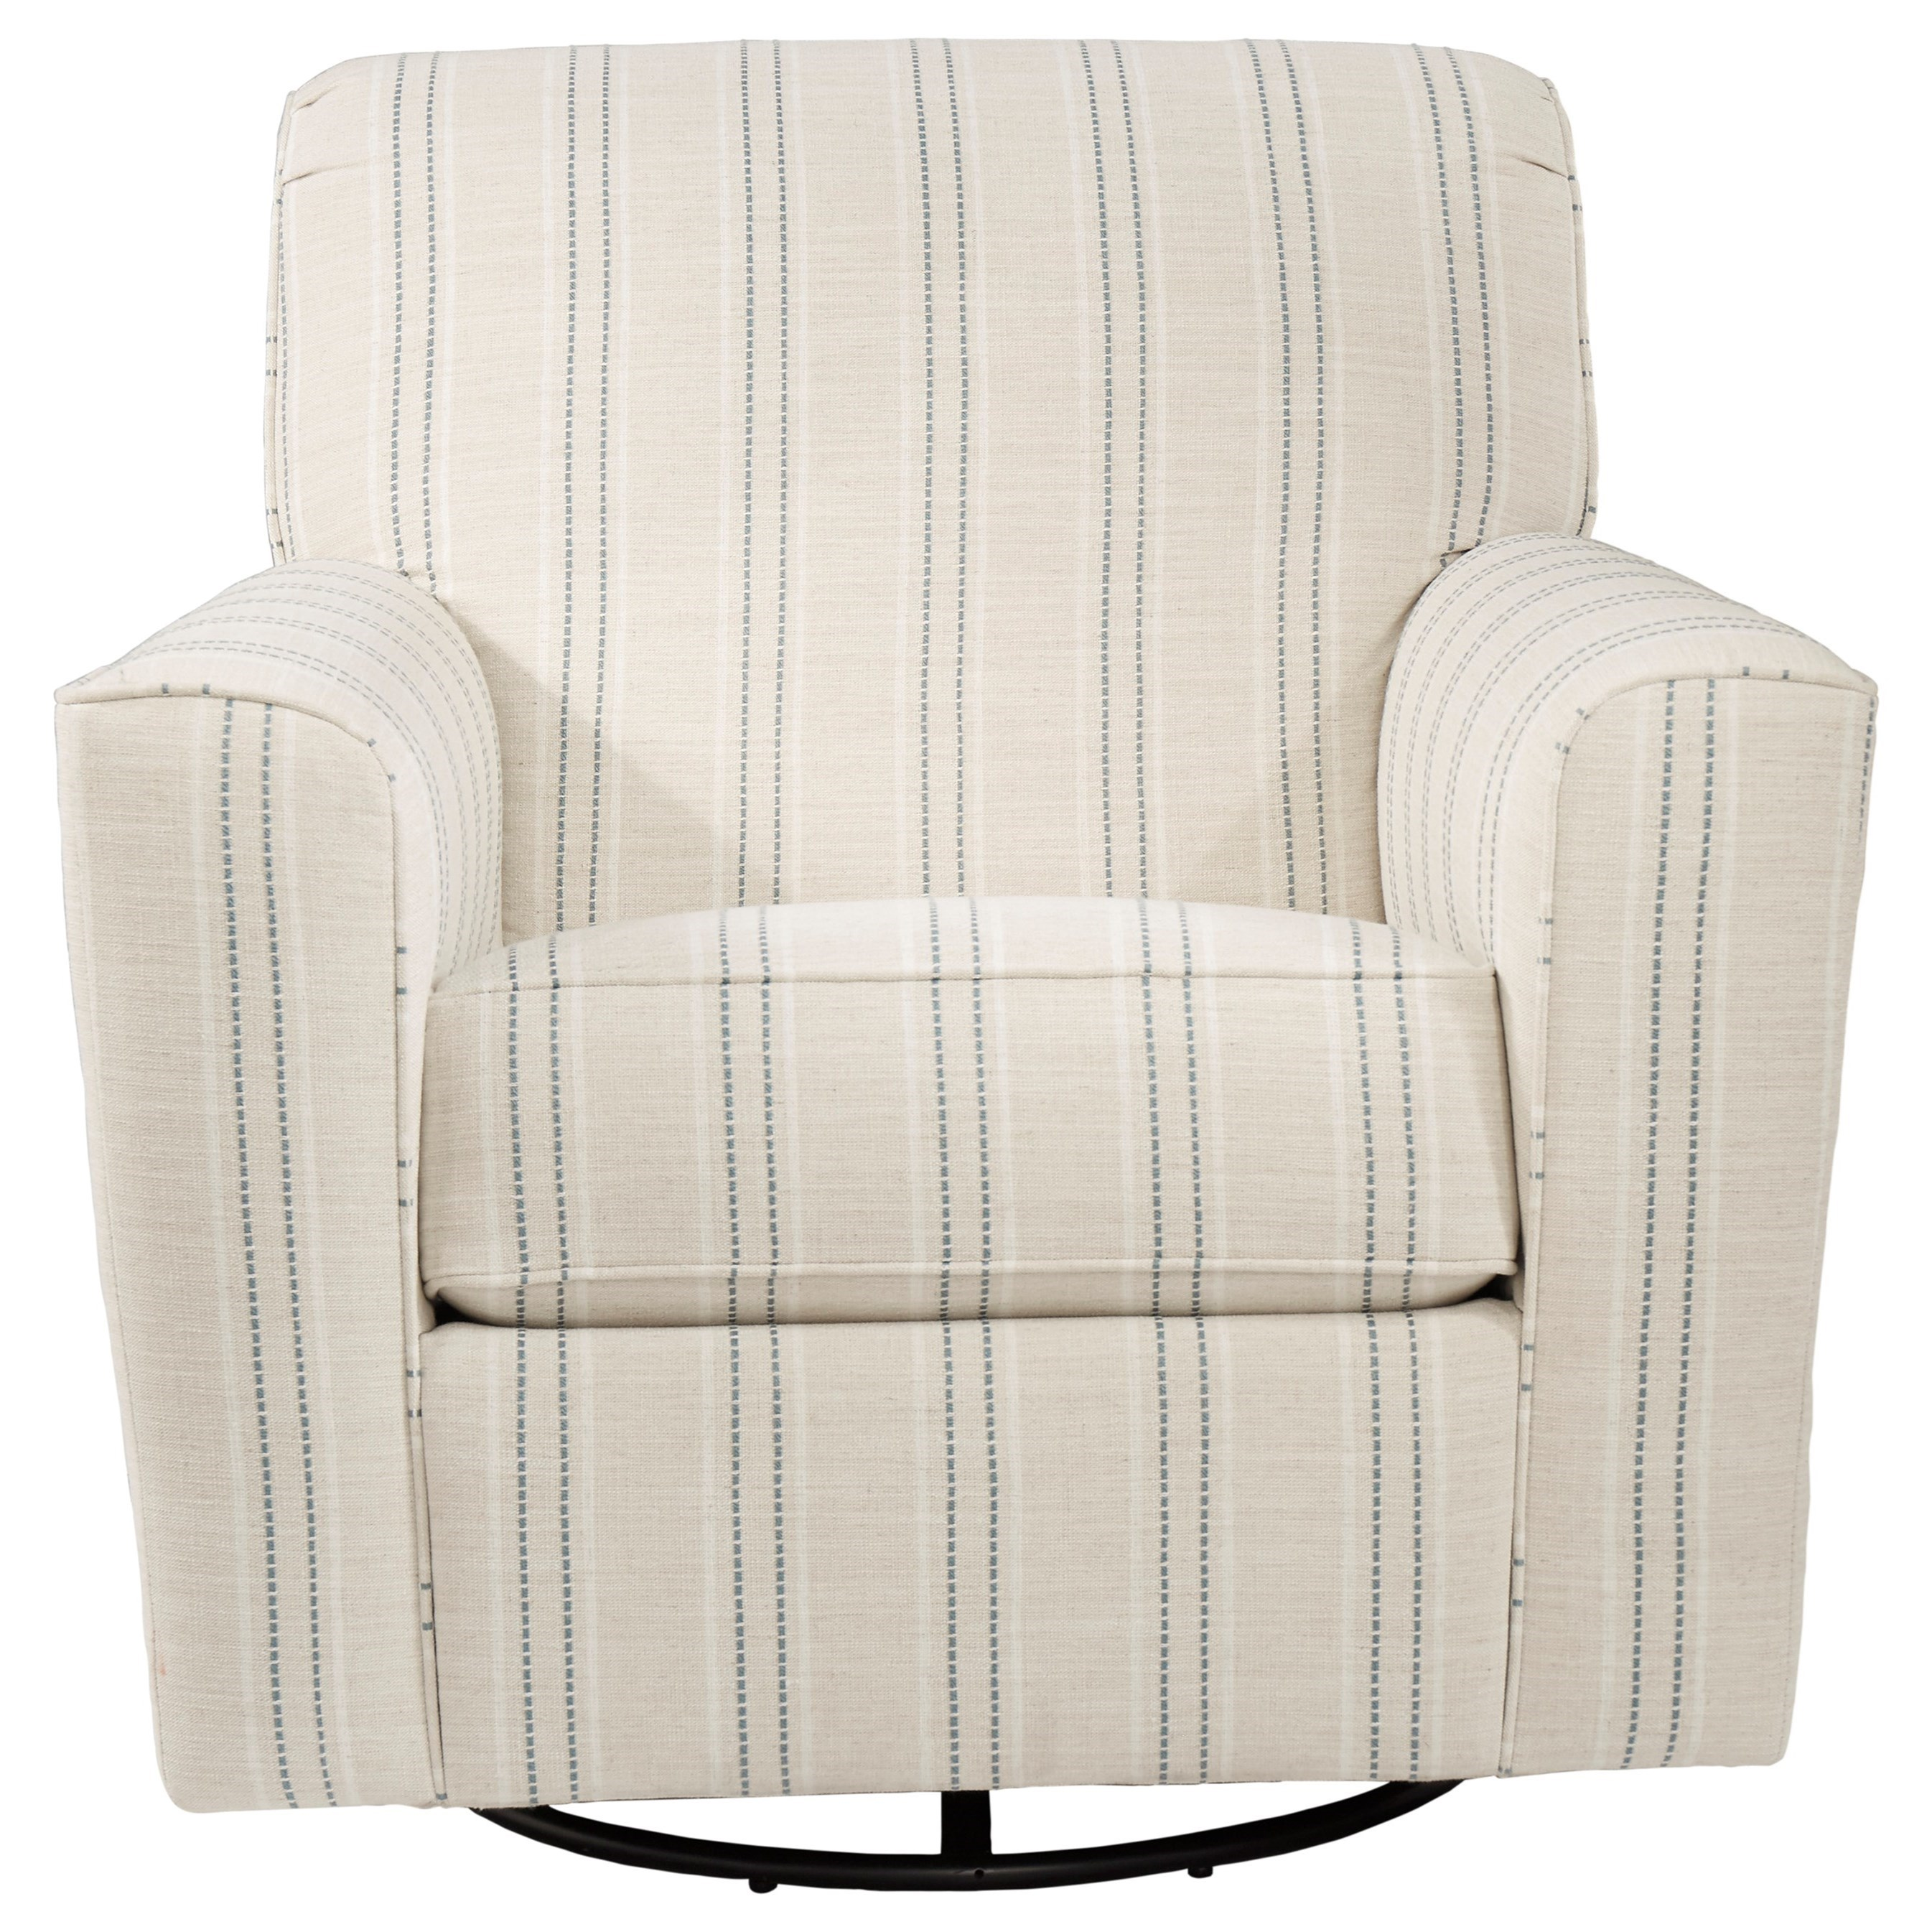 Alandari Swivel Glider Accent Chair by Signature Design by Ashley at Coconis Furniture & Mattress 1st